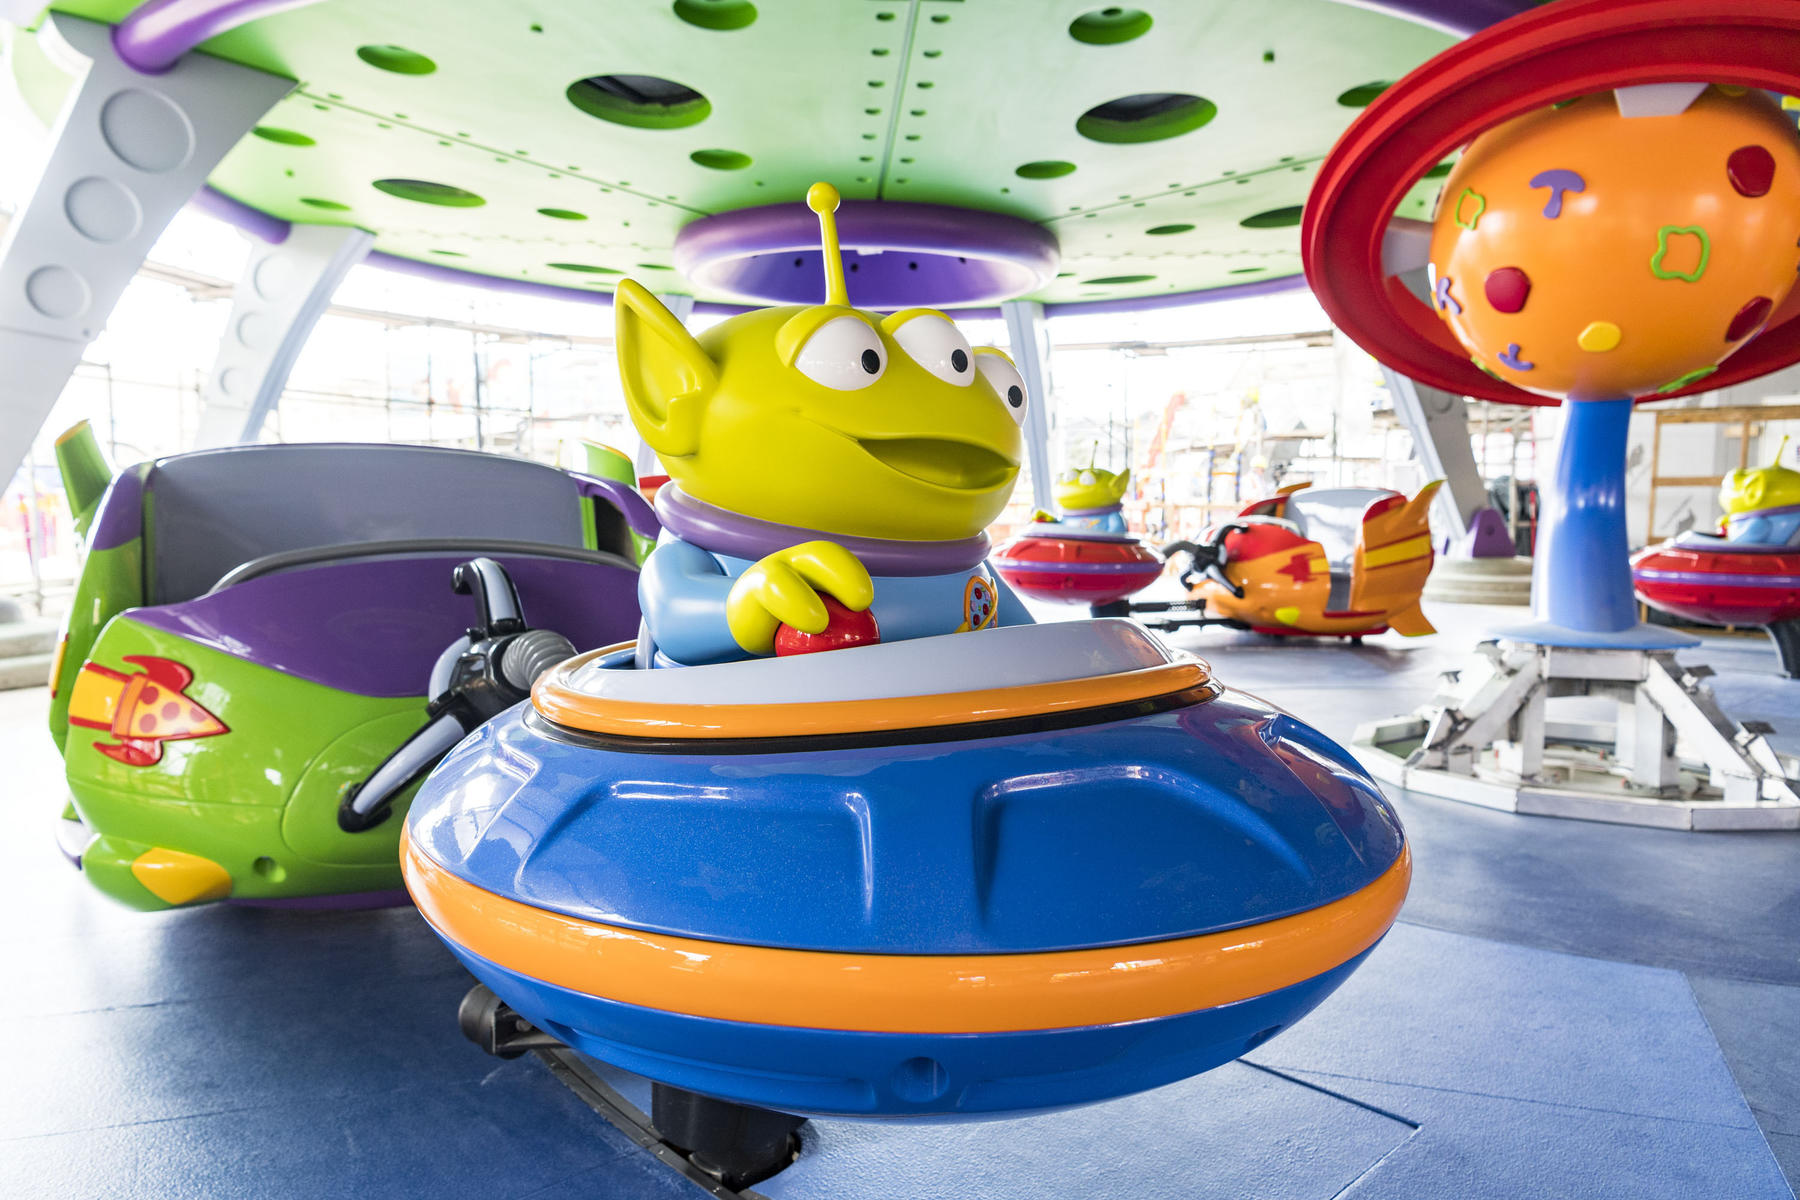 Alien Swirling Saucers Ride at Toy Story Land